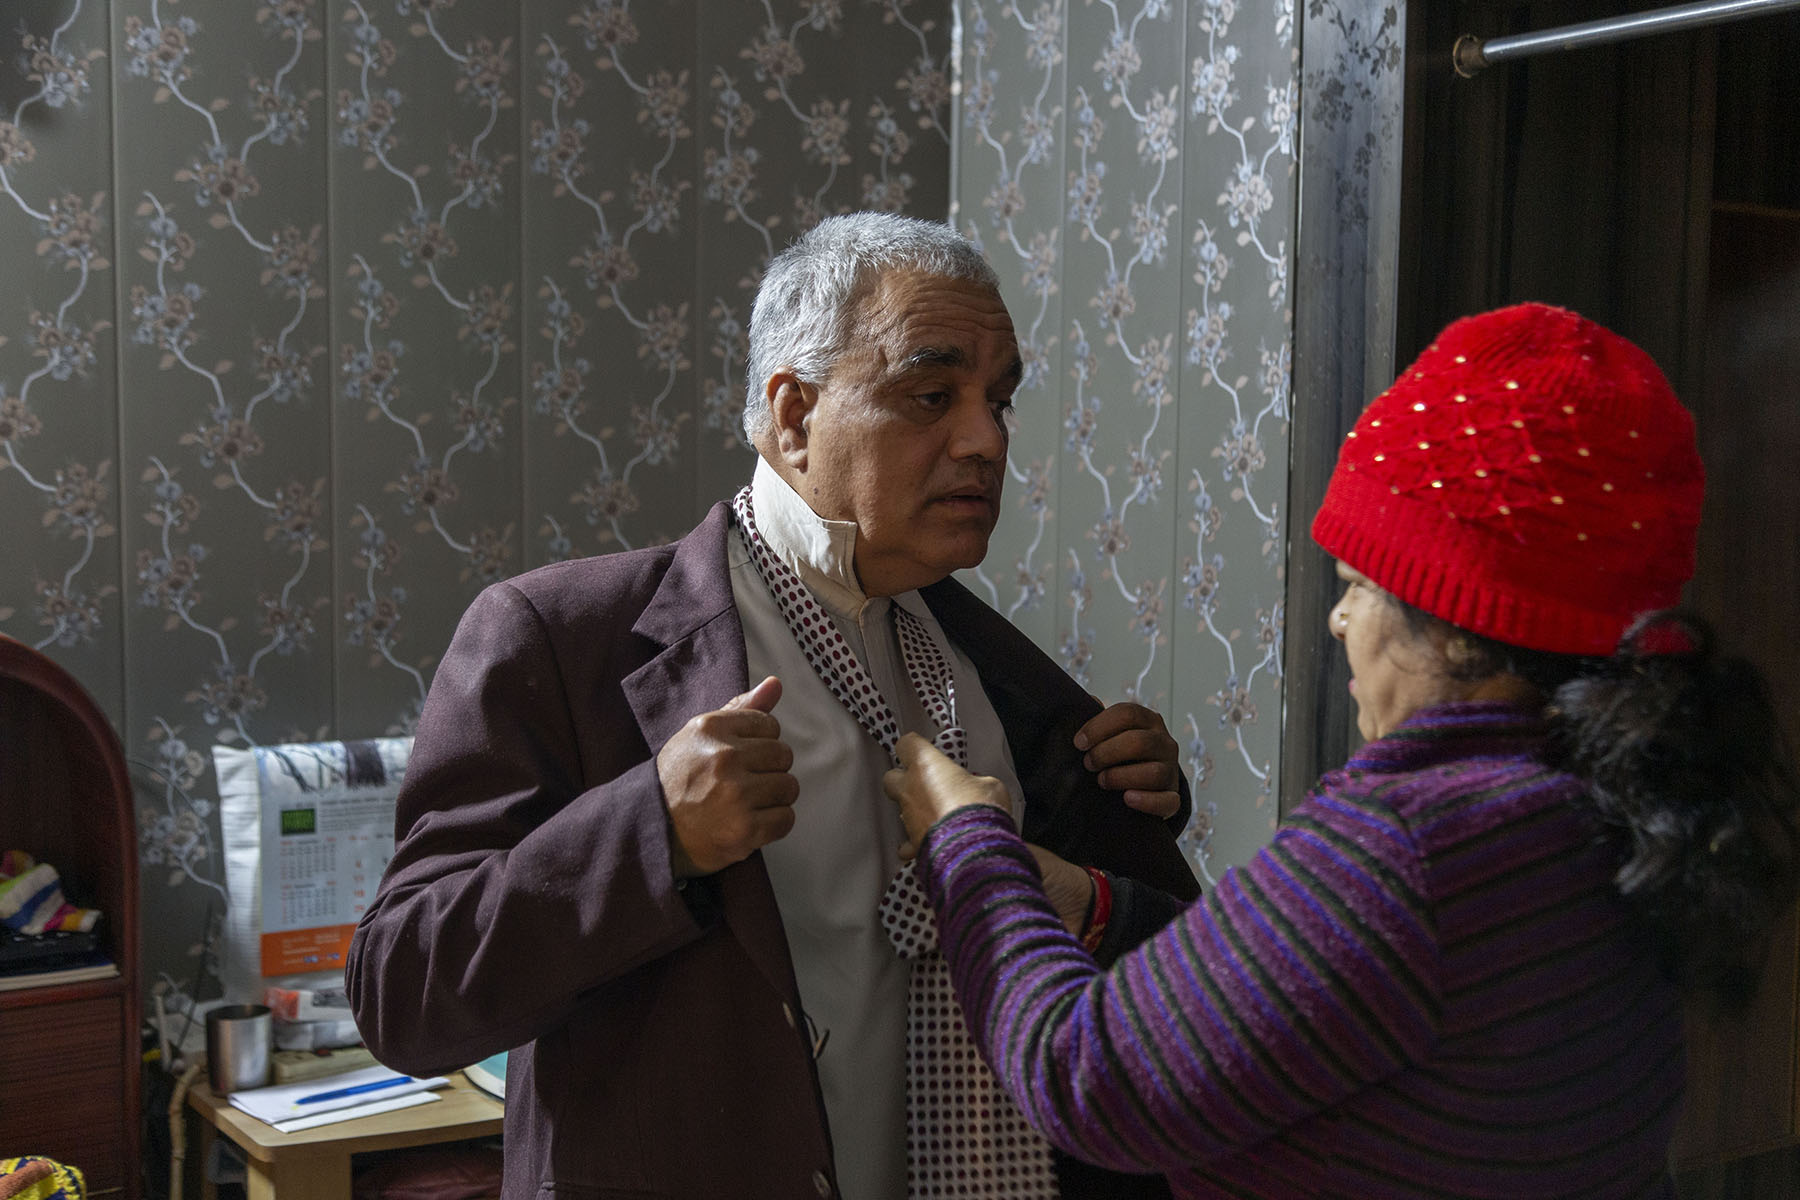 Jayara in a brown coat and shirt with upturned collar standing in front of his wife who is knotting his tie for him